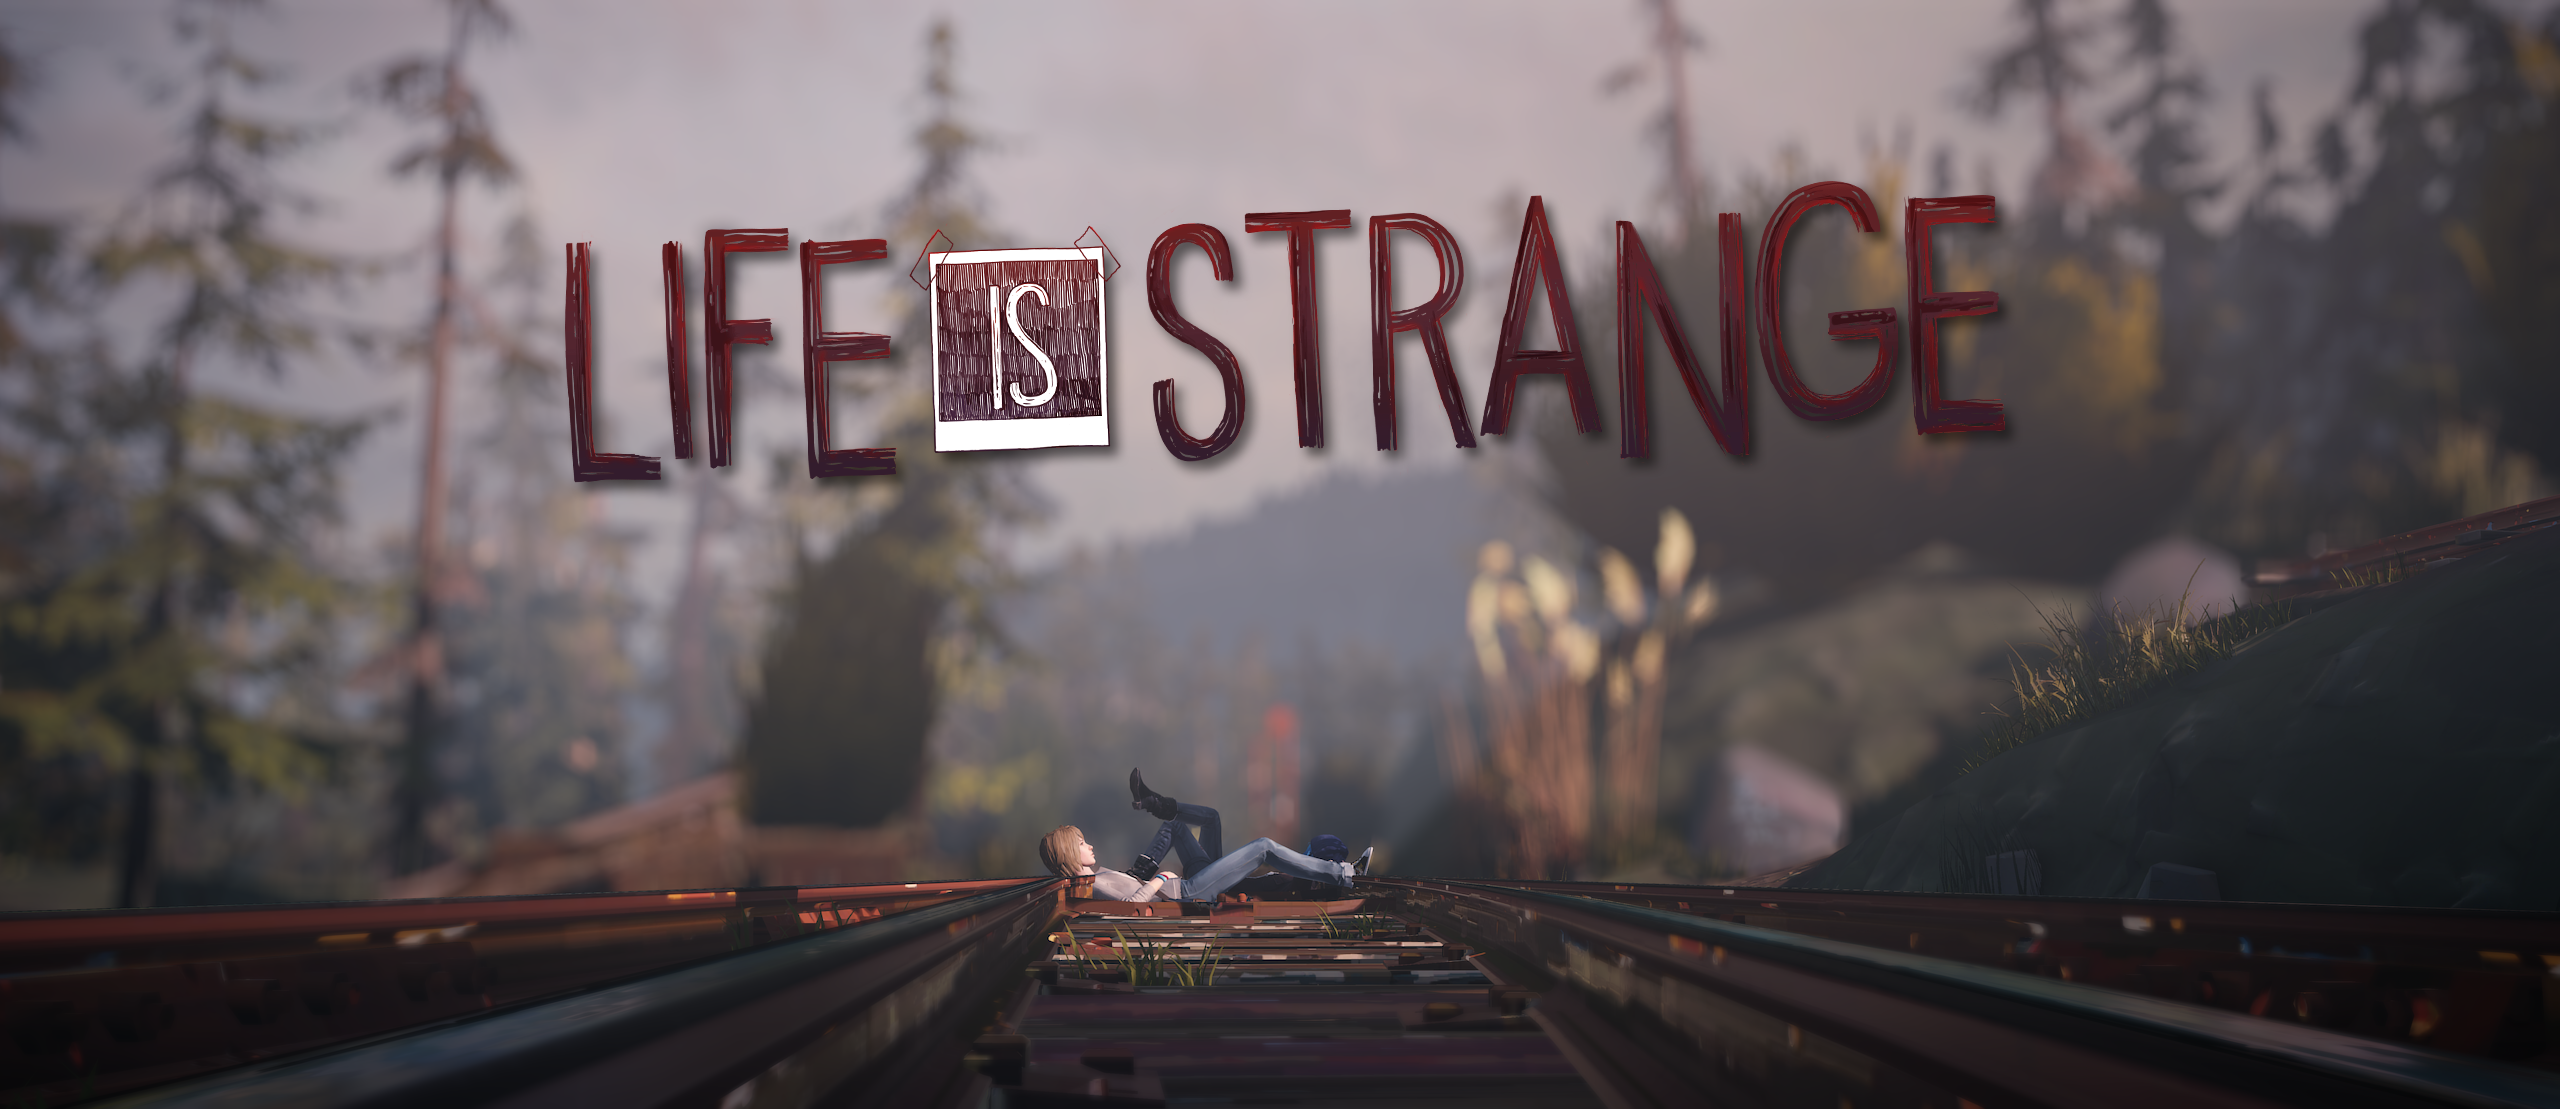 max caulfield life is strange, hd games, 4k wallpapers, images